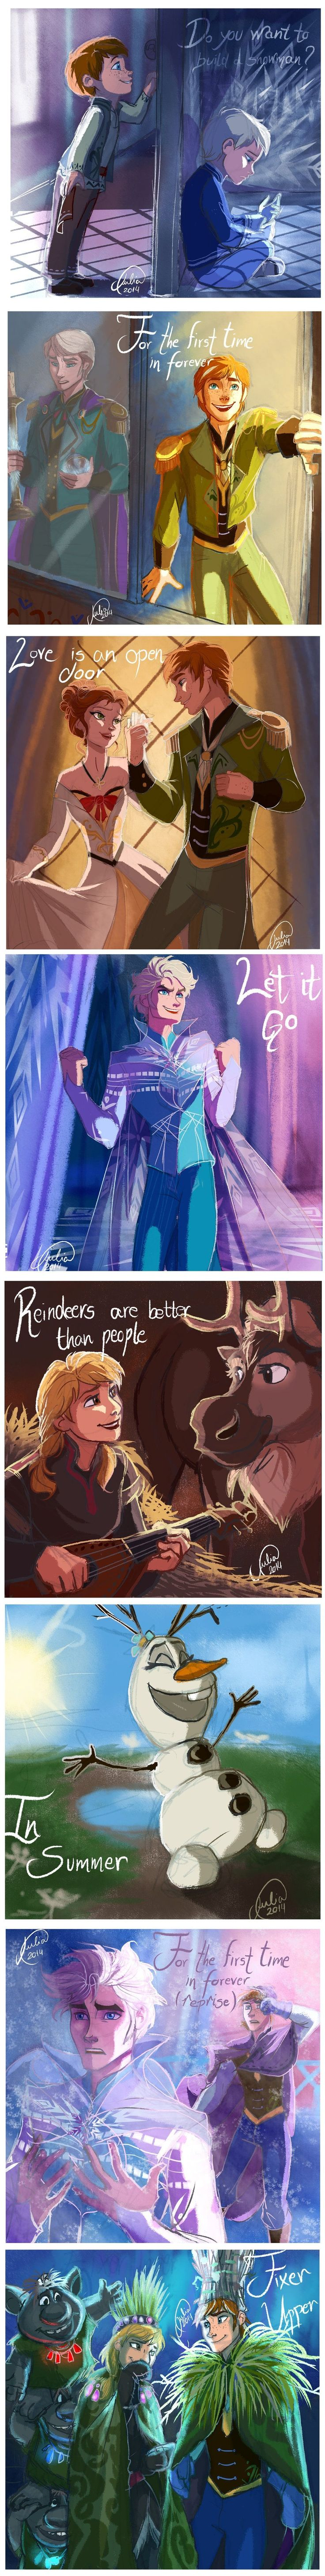 I kinda want to see a switched version of Frozen now....   The boys are super cute.....